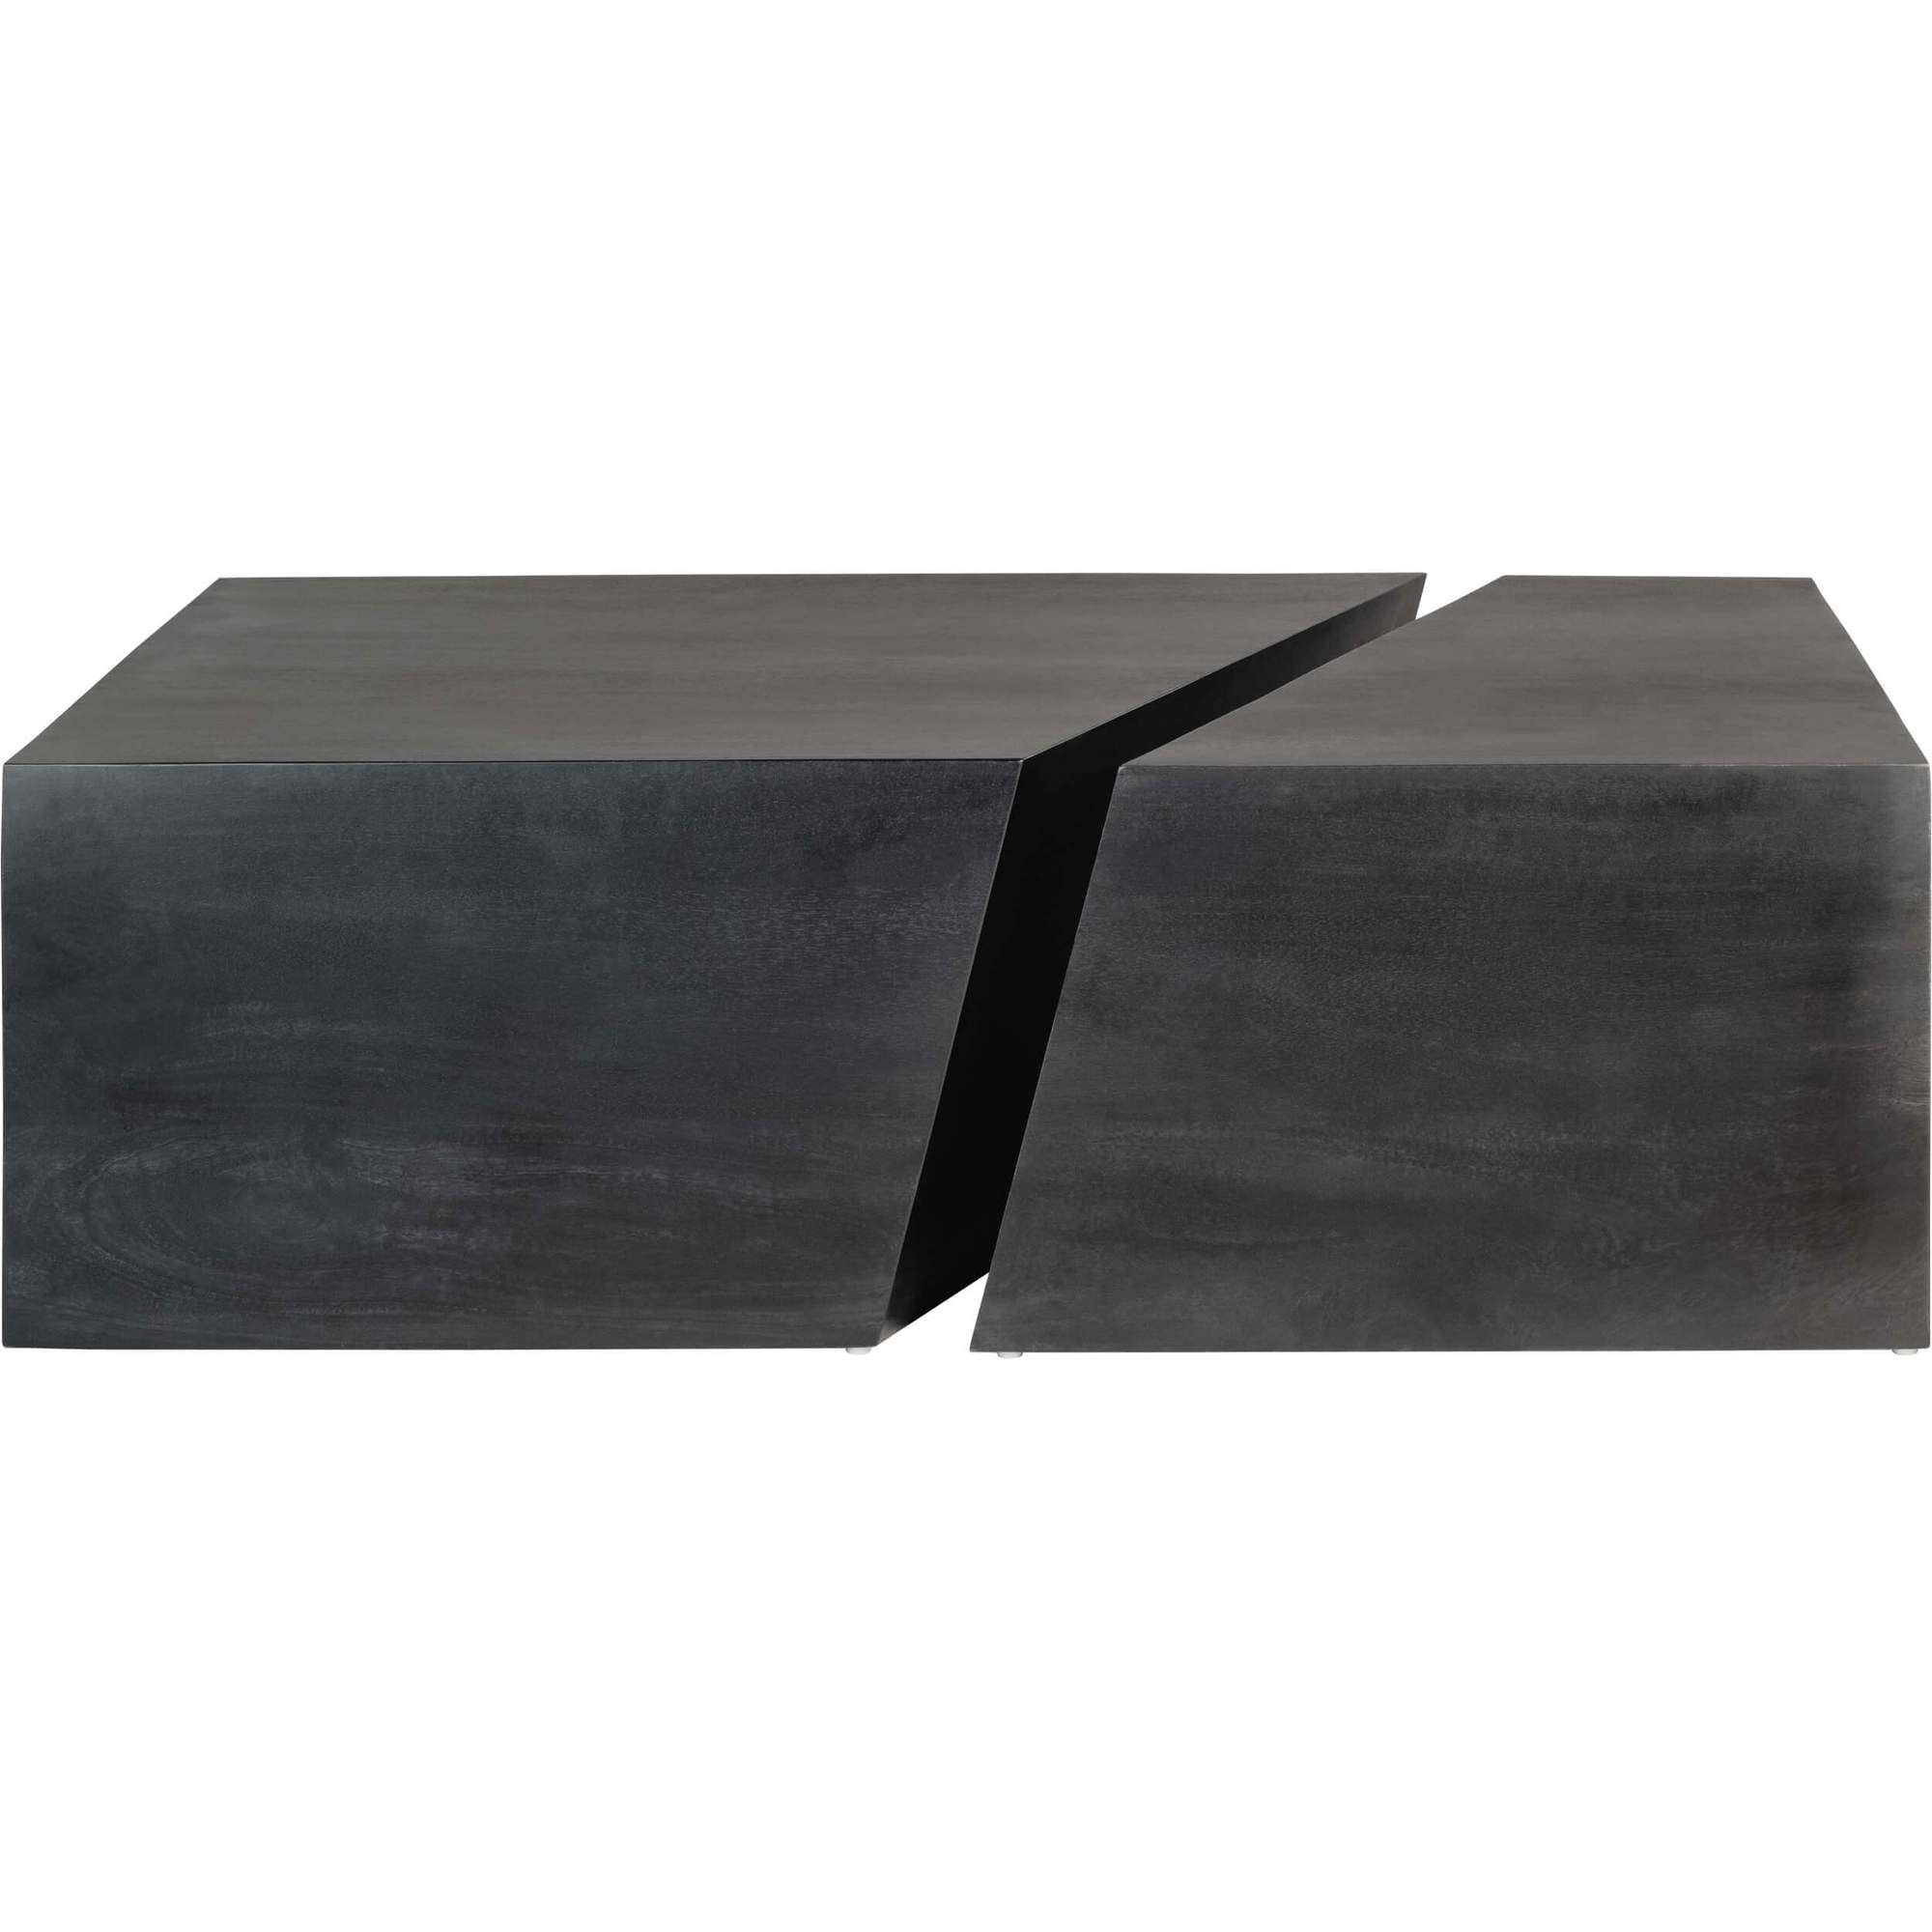 Zurich Coffee Table In 2021 Stone Coffee Table Coffee Table Concrete Coffee Table [ 2000 x 2000 Pixel ]